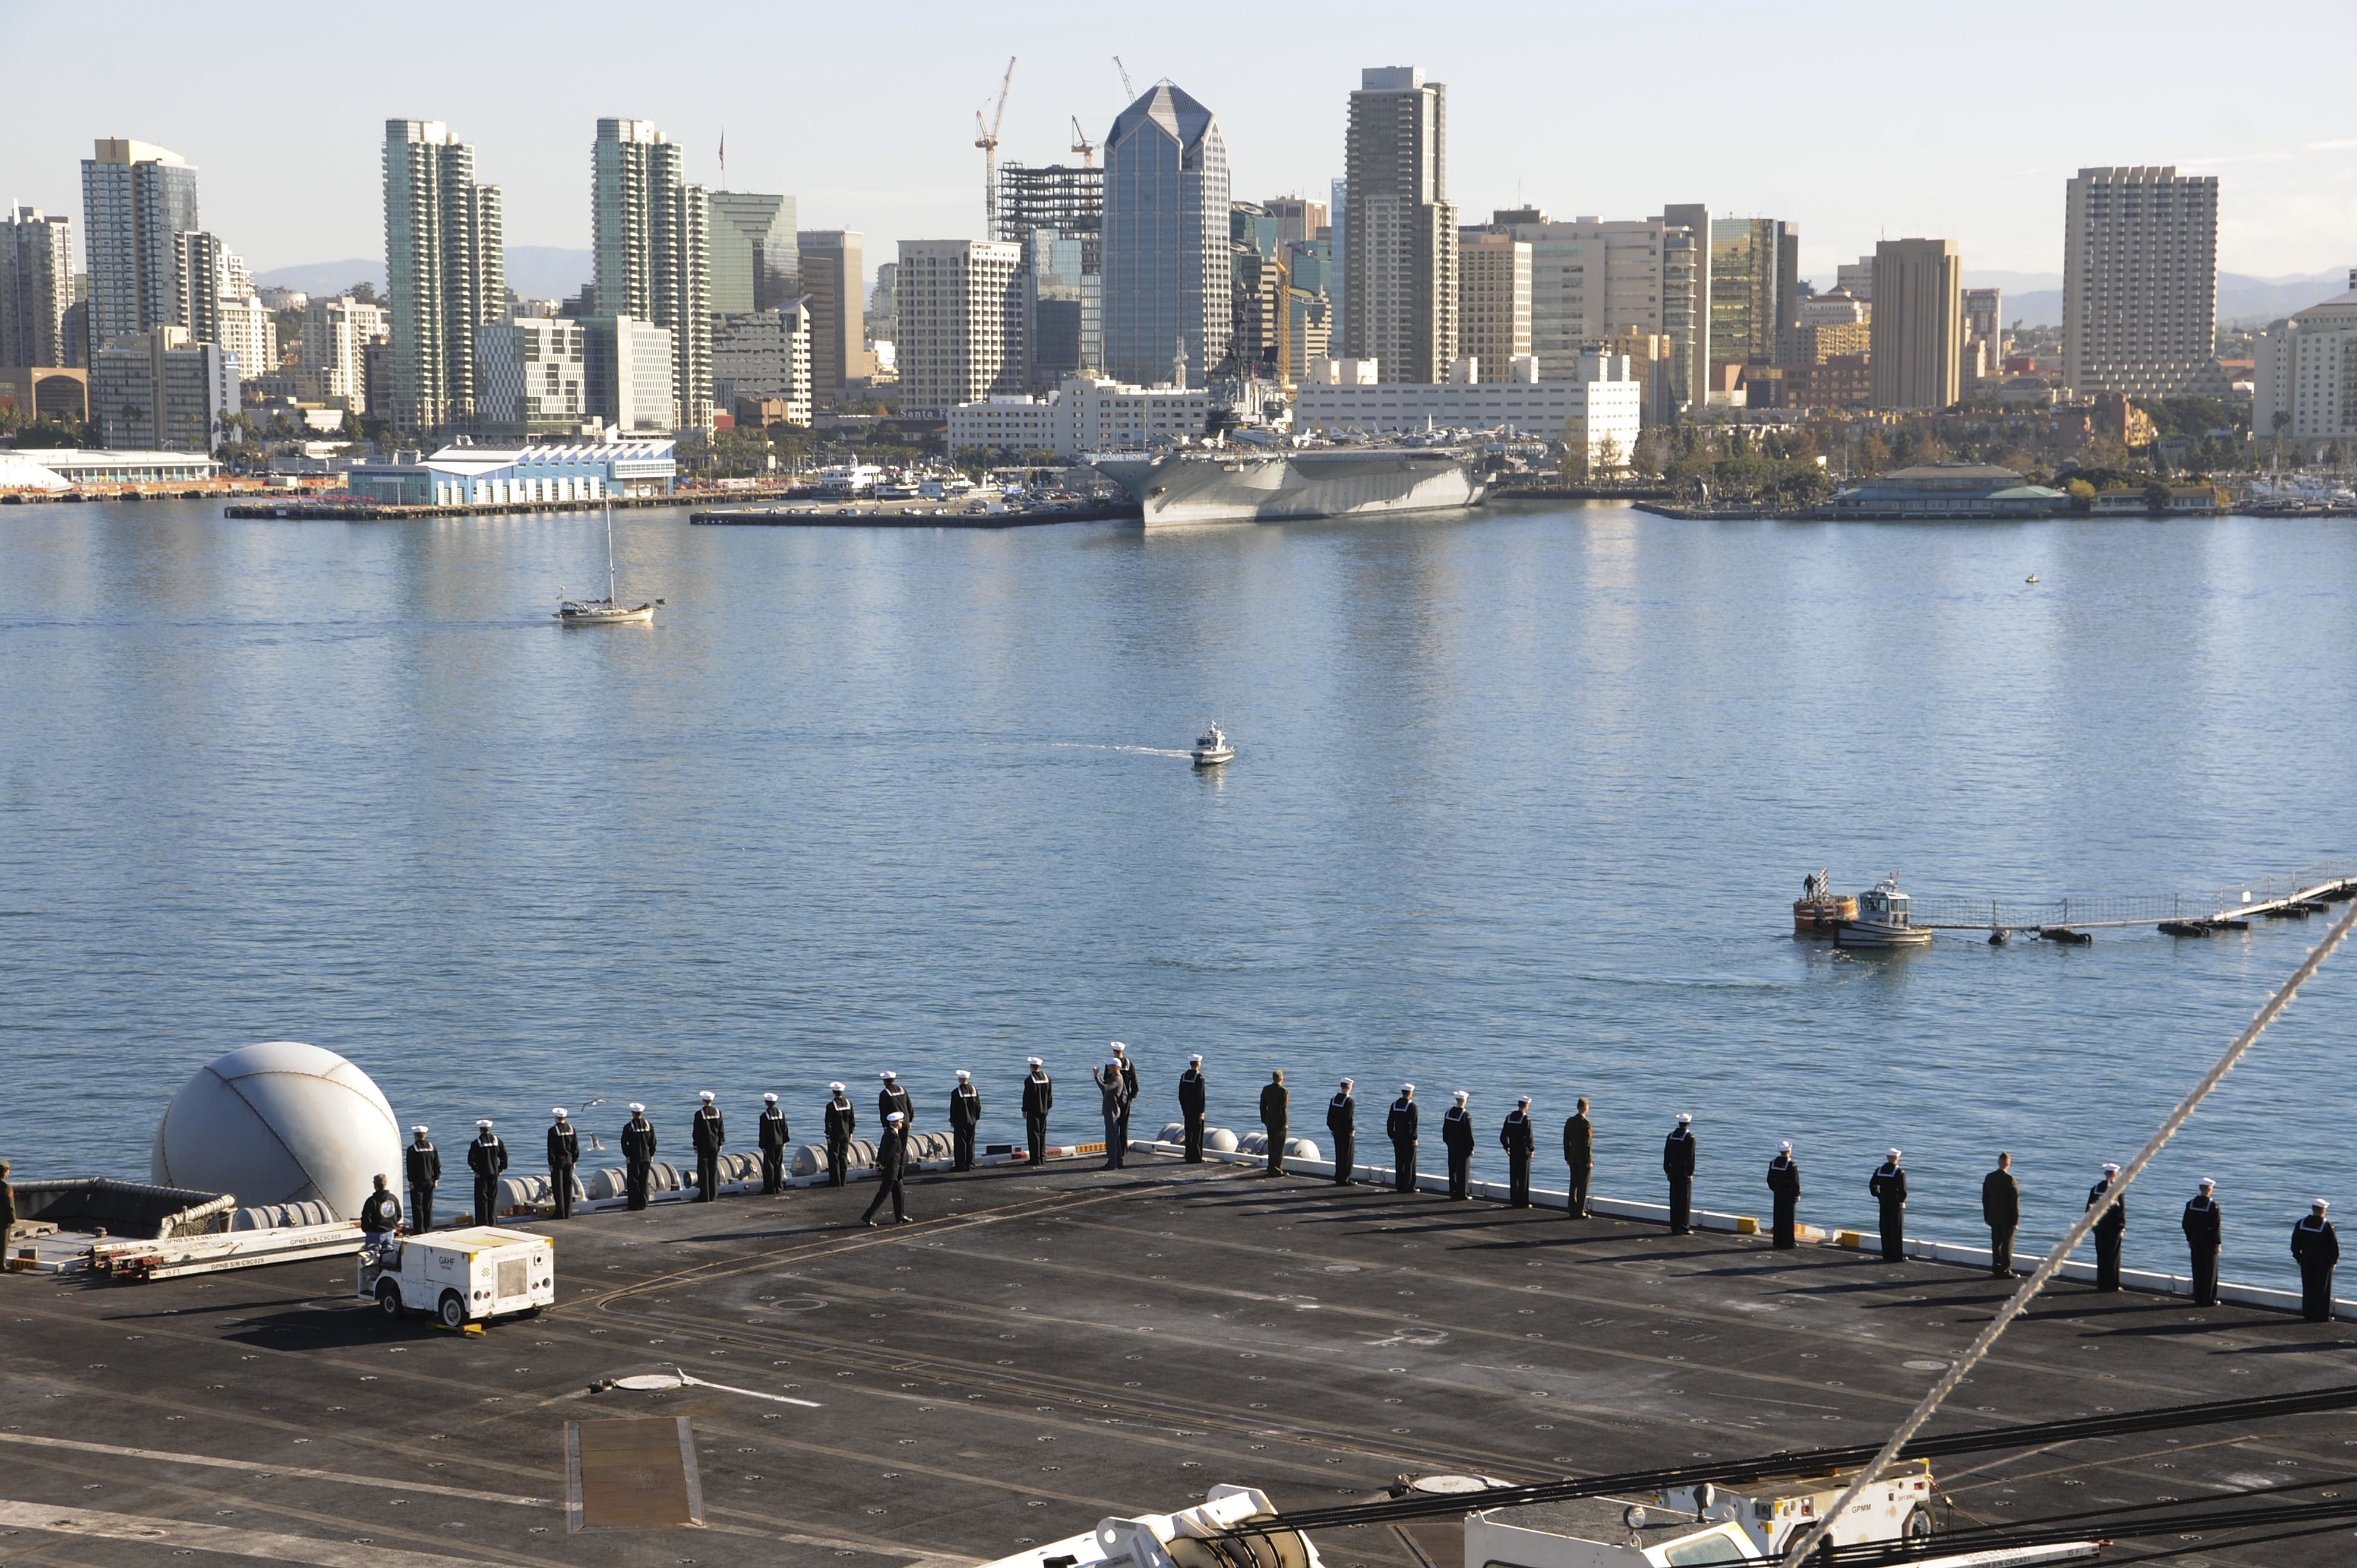 151123-N-NV908-151 SAN DIEGO (Nov. 23, 2015) Sailors and Marines man the rails while the aircraft carrier USS Theodore Roosevelt (CVN 71) moors to the pier at her new homeport. Theodore Roosevelt arrived at its new homeport in San Diego after completing an eight month around the world deployment. (U.S. Navy Photo by Mass Communication Specialist Seaman Chad M. Trudeau/Released)